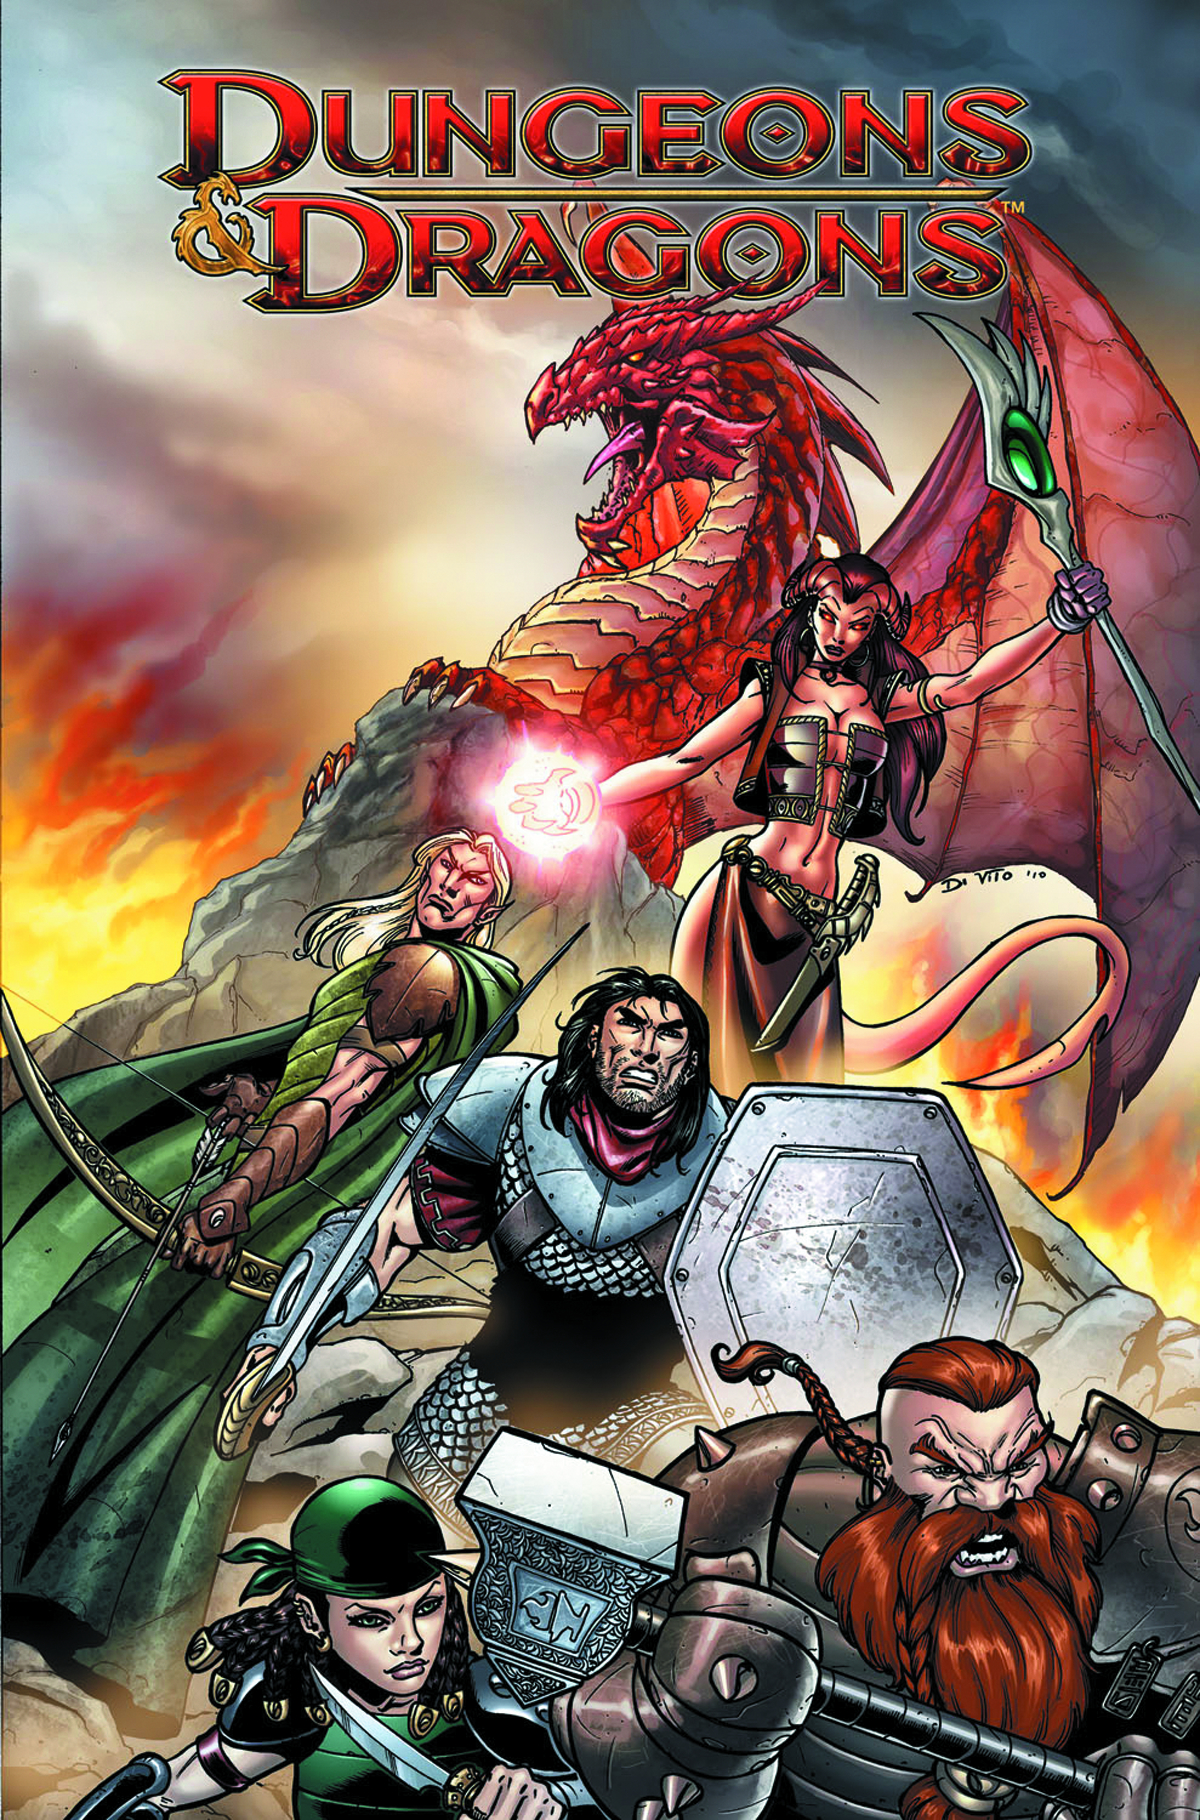 DUNGEONS & DRAGONS FELLS FIVE HC